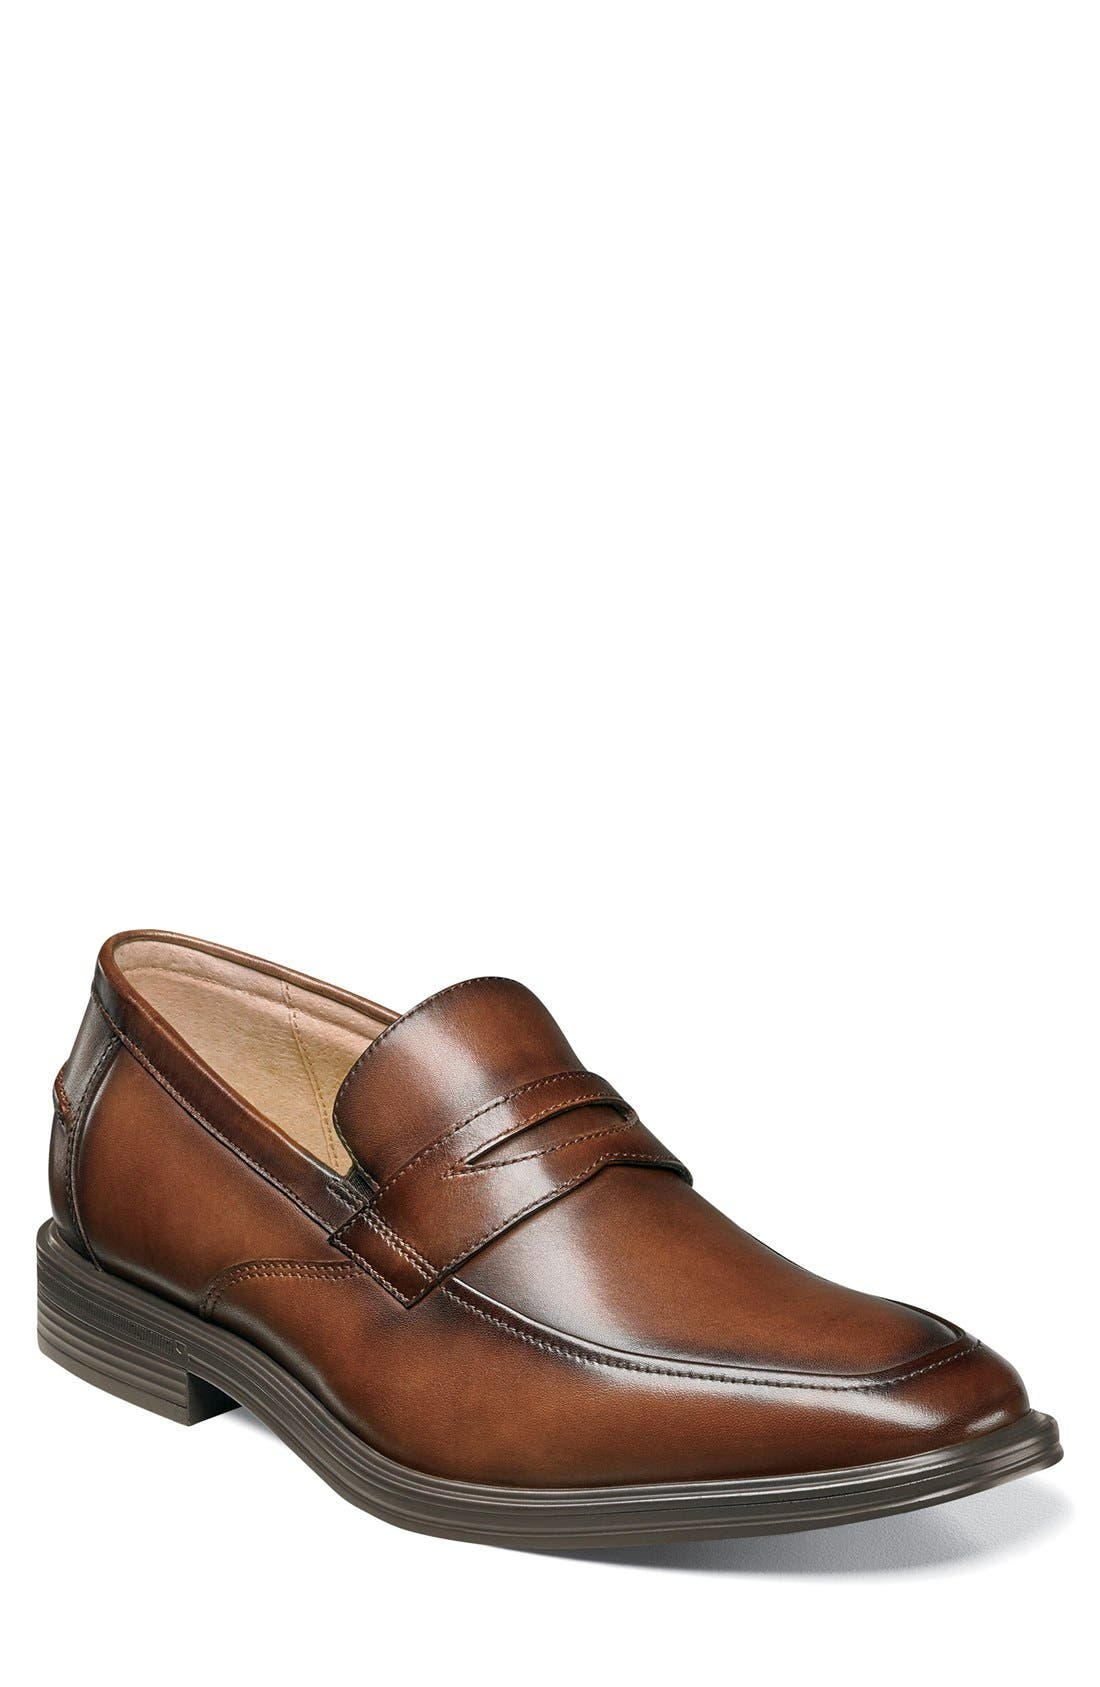 FLORSHEIM, 'Heights' Penny Loafer, Main thumbnail 1, color, COGNAC LEATHER